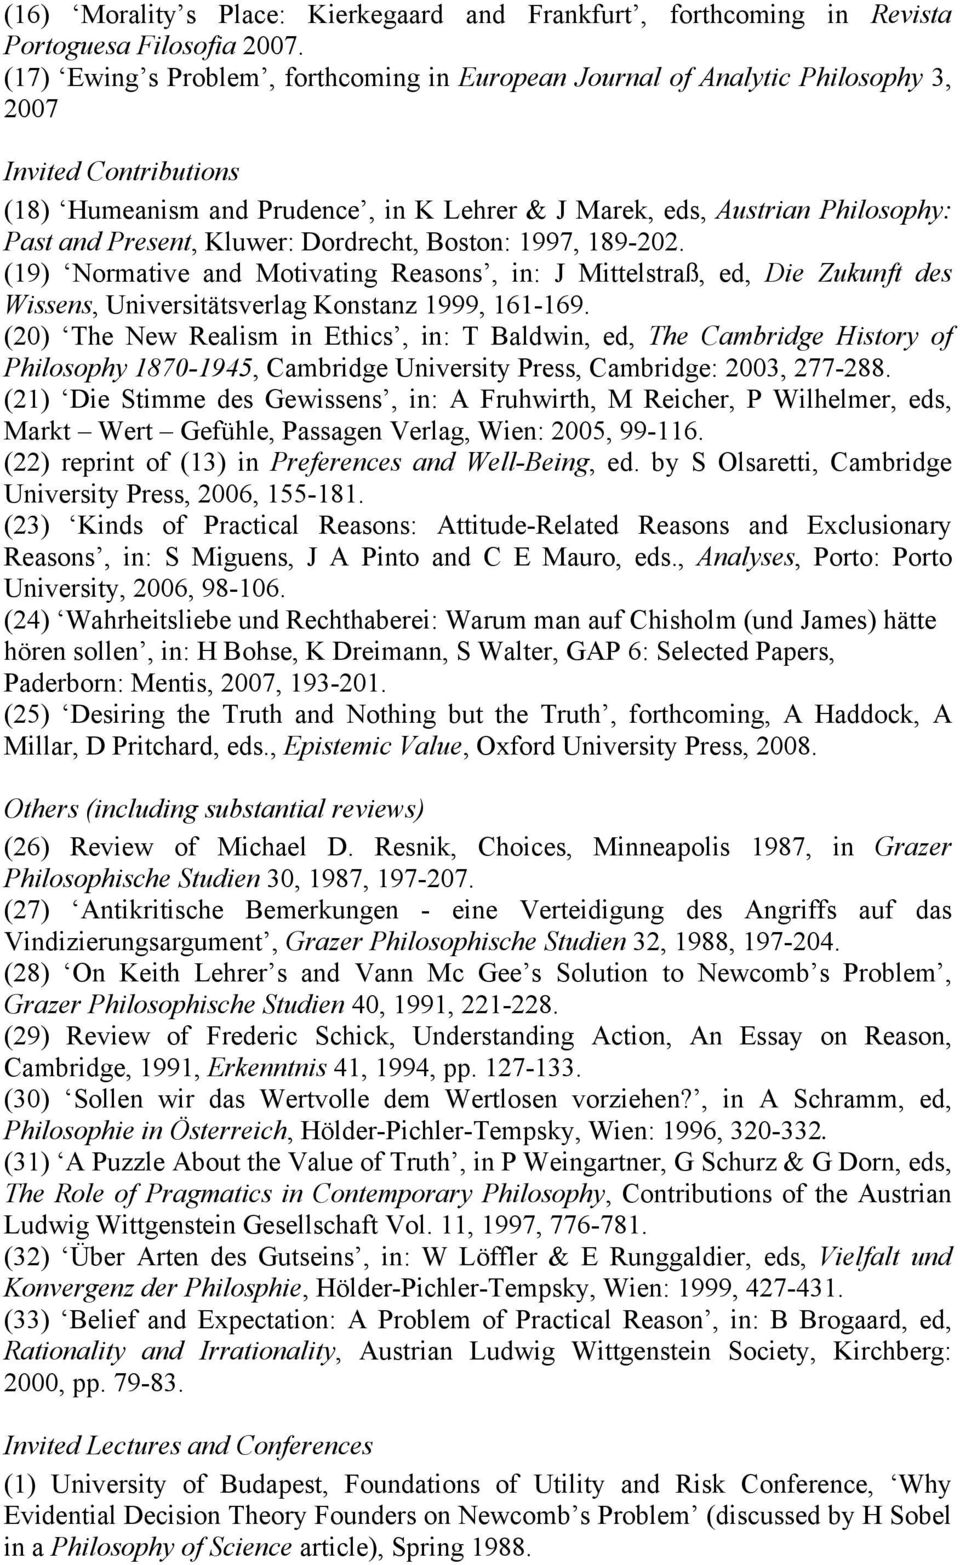 Present, Kluwer: Dordrecht, Boston: 1997, 189-202. (19) Normative and Motivating Reasons, in: J Mittelstraß, ed, Die Zukunft des Wissens, Universitätsverlag Konstanz 1999, 161-169.